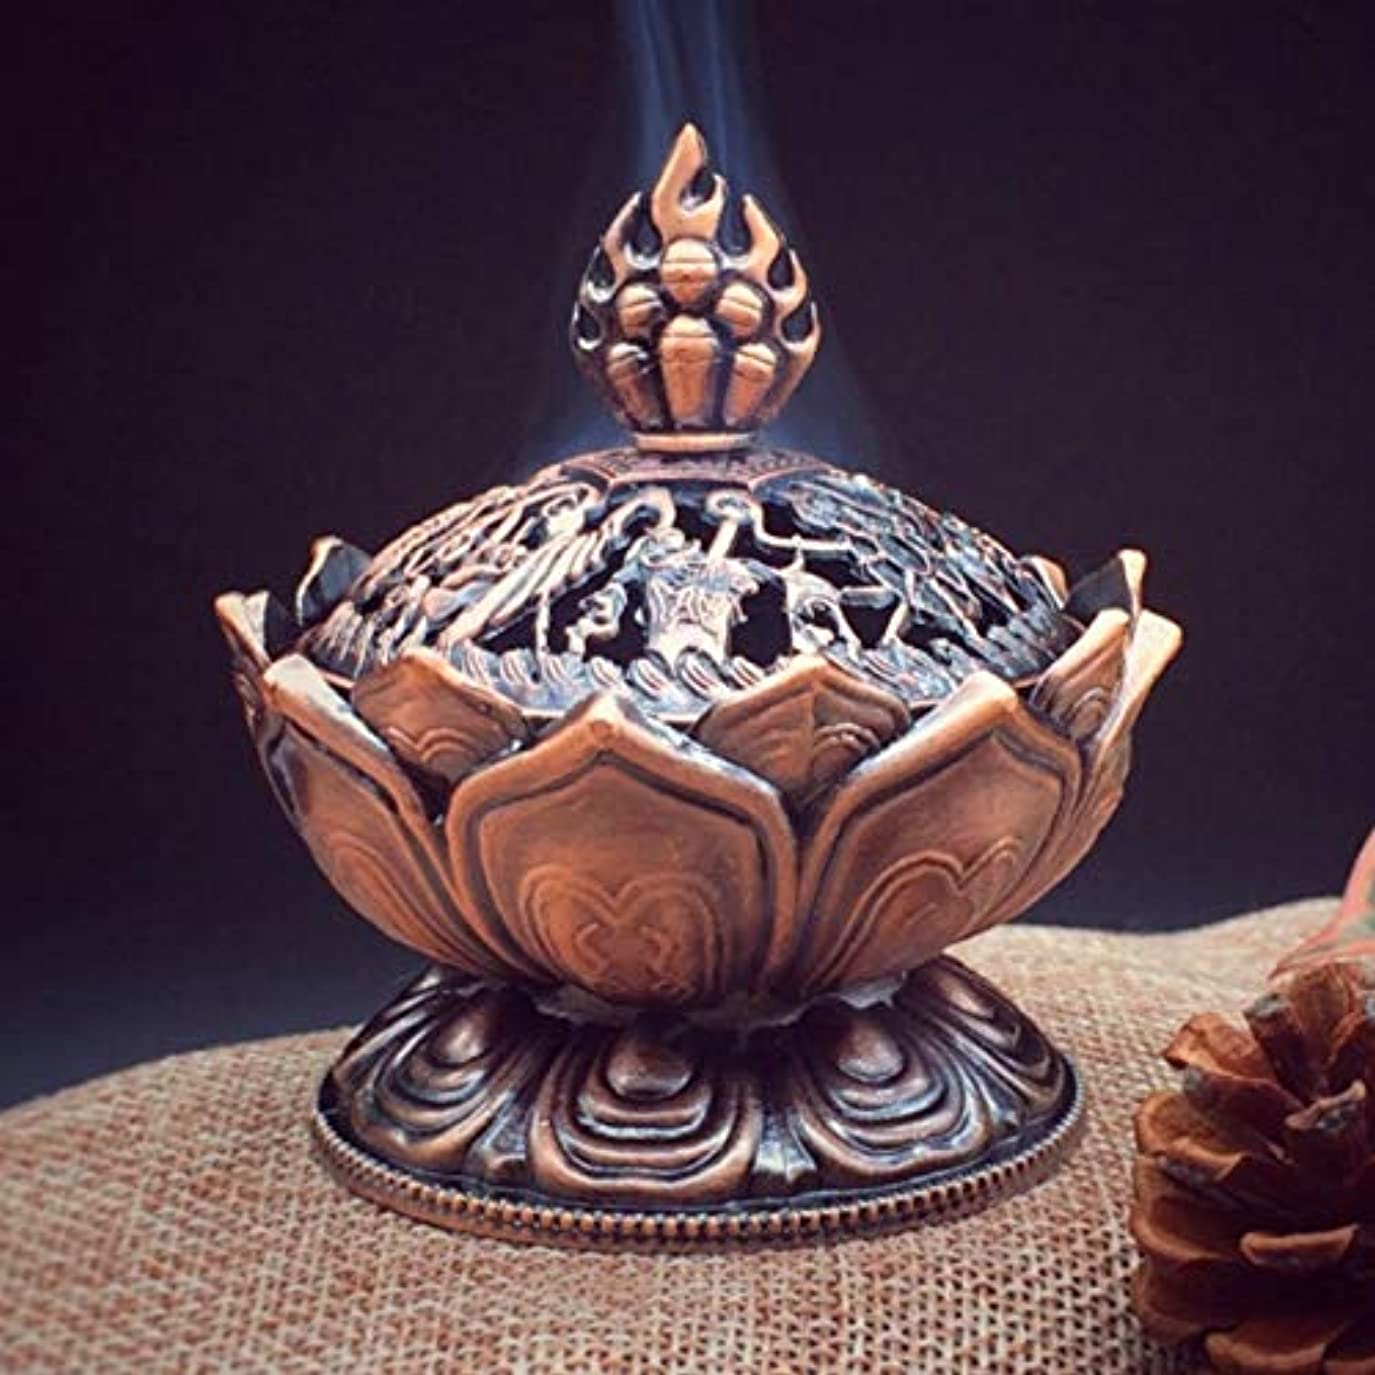 指定トロリーランドリーHoly Tibetan Lotus Designed Incense Burner Zinc Alloy Bronze Mini Incense Burner Incensory Metal Craft Home Decor